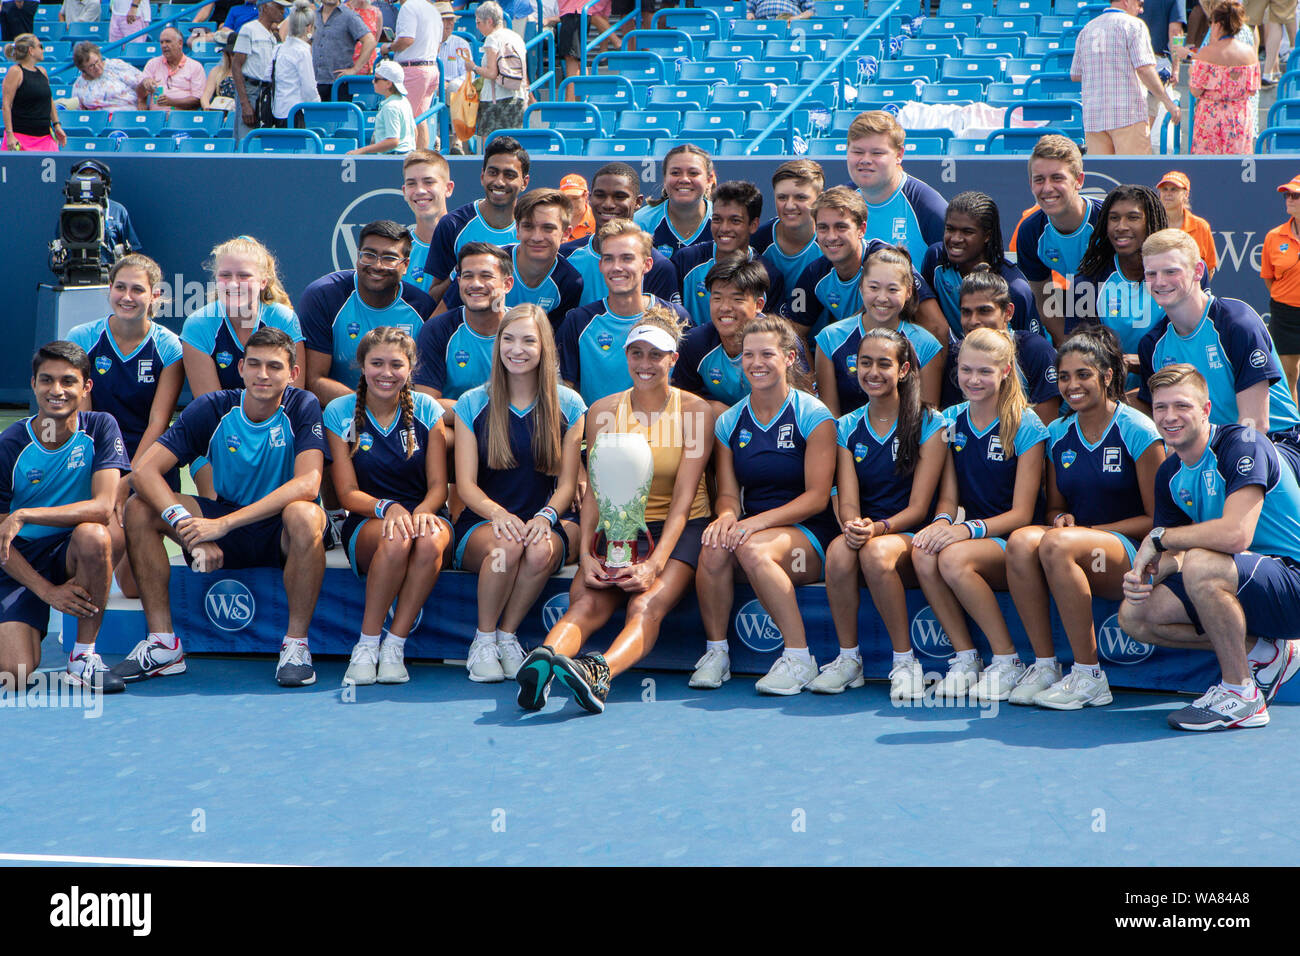 August 18, 2019, Mason, Ohio, USA: Madison Keys (USA) poses with the ball kids after winning the Women's Final of the Western and Southern Open at the Lindner Family Tennis Center, Mason, Oh. (Credit Image: © Scott Stuart/ZUMA Wire) Stock Photo